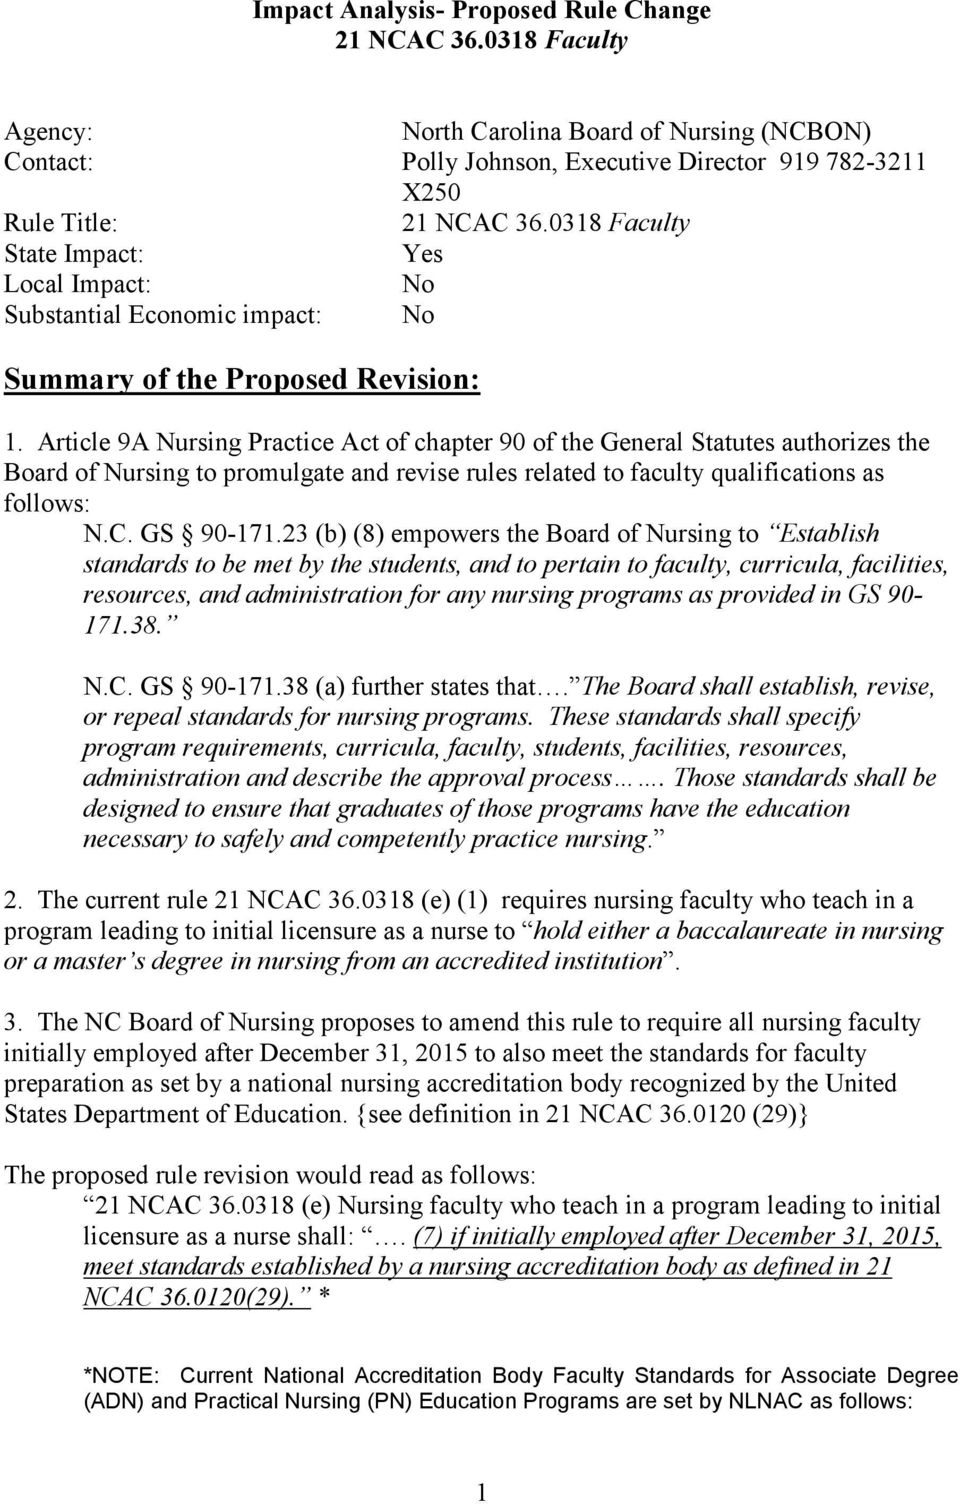 Article 9A Nursing Practice Act of chapter 90 of the General Statutes authorizes the Board of Nursing to promulgate and revise rules related to faculty qualifications as follows: N.C. GS 90-171.